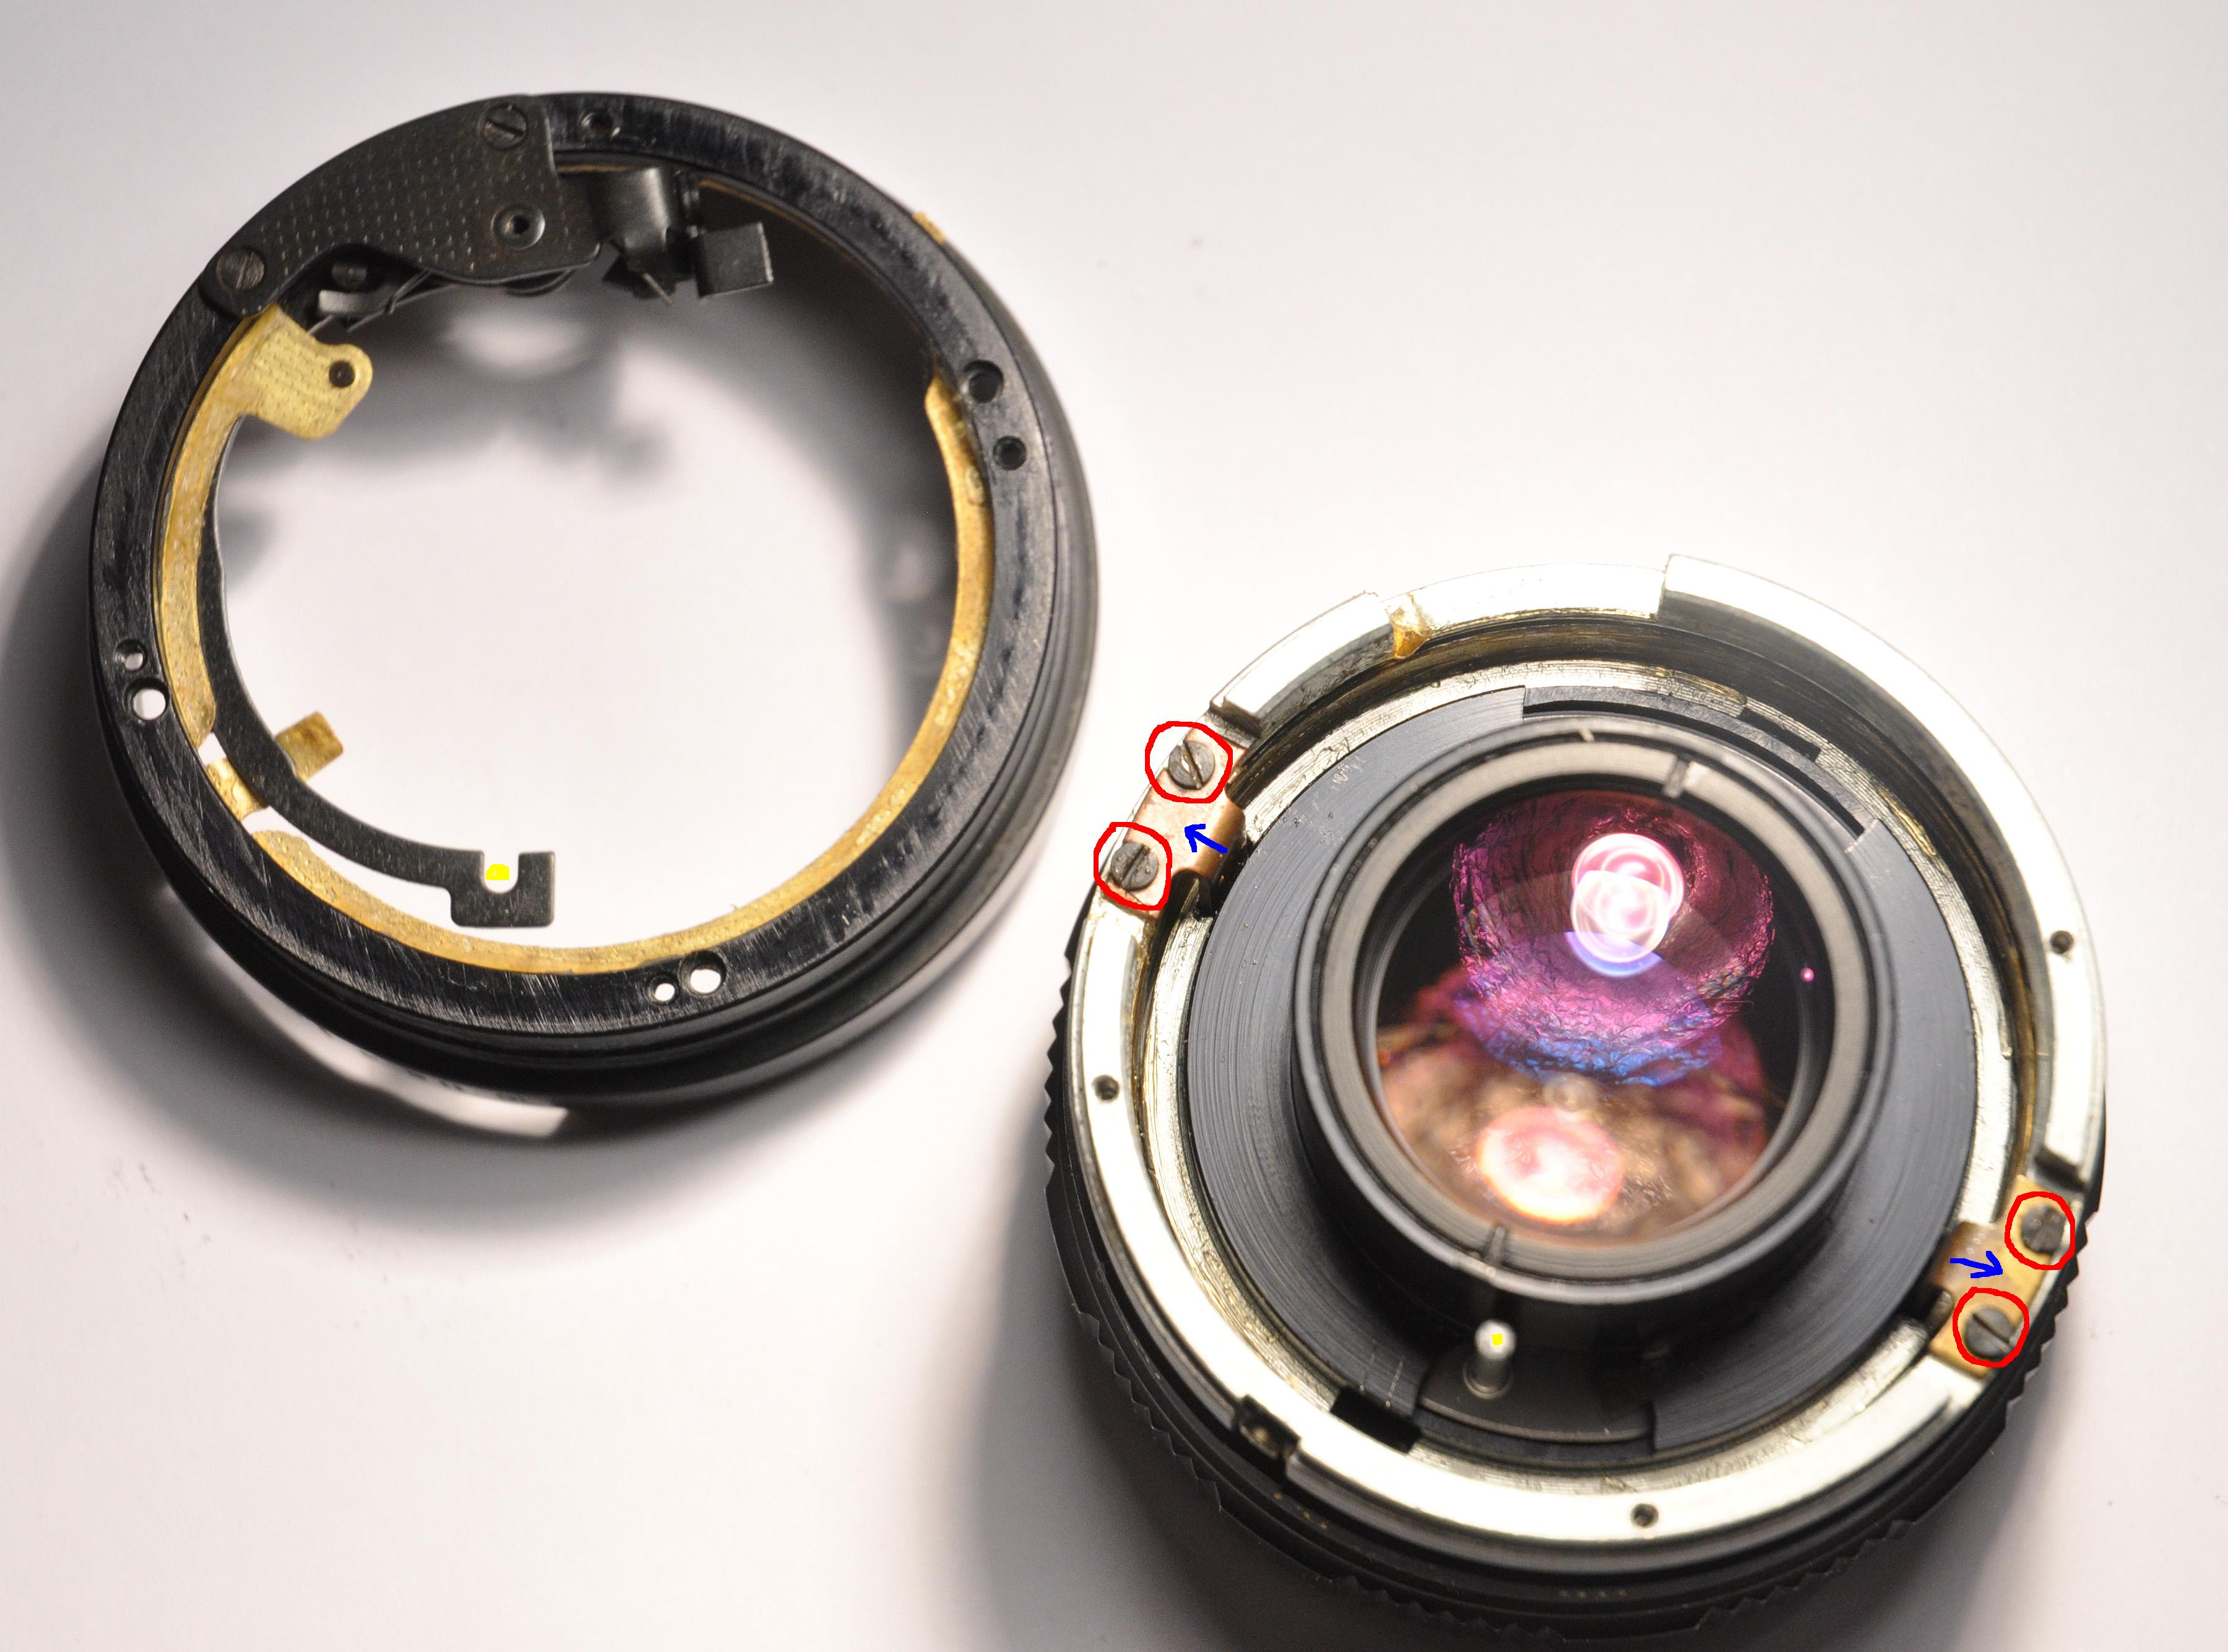 Repair How To Make Helios 44m 6 Usable With N Company Seven Nikon 300mm F2 Ed If Lens Parts Diagram List Request Now Remove Those Very Little Screws Red And Put The Fixing Brass Out Of Barrel Blue